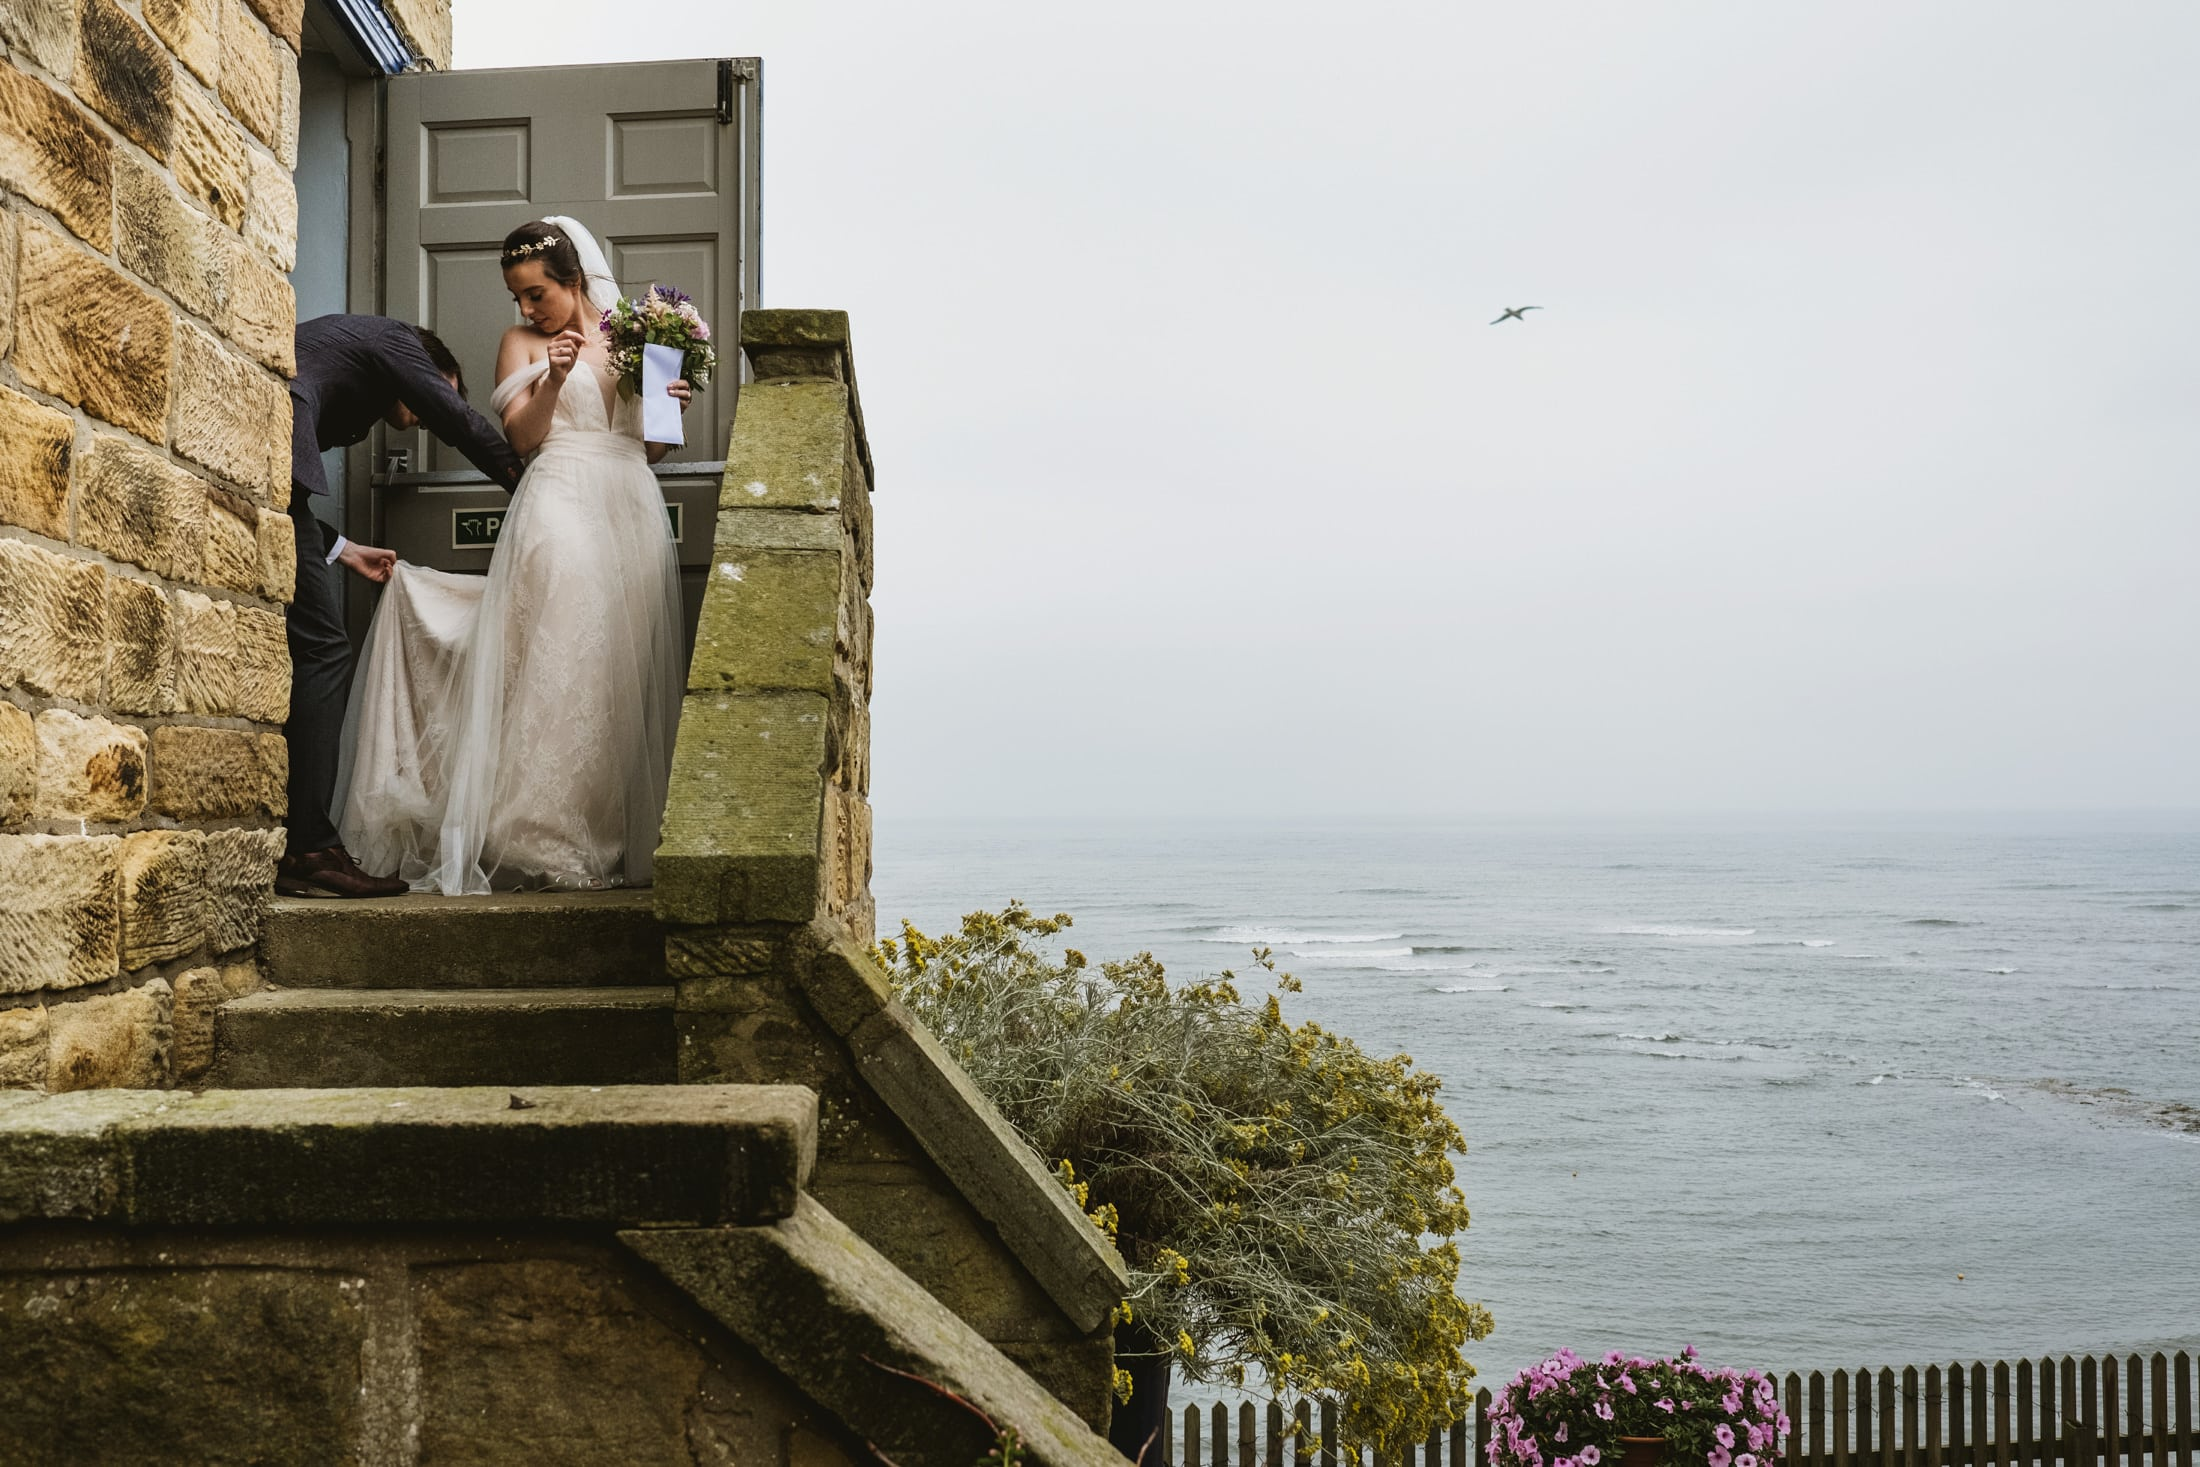 Bride and groom leaving the ceremony at Robin's Hood Bay